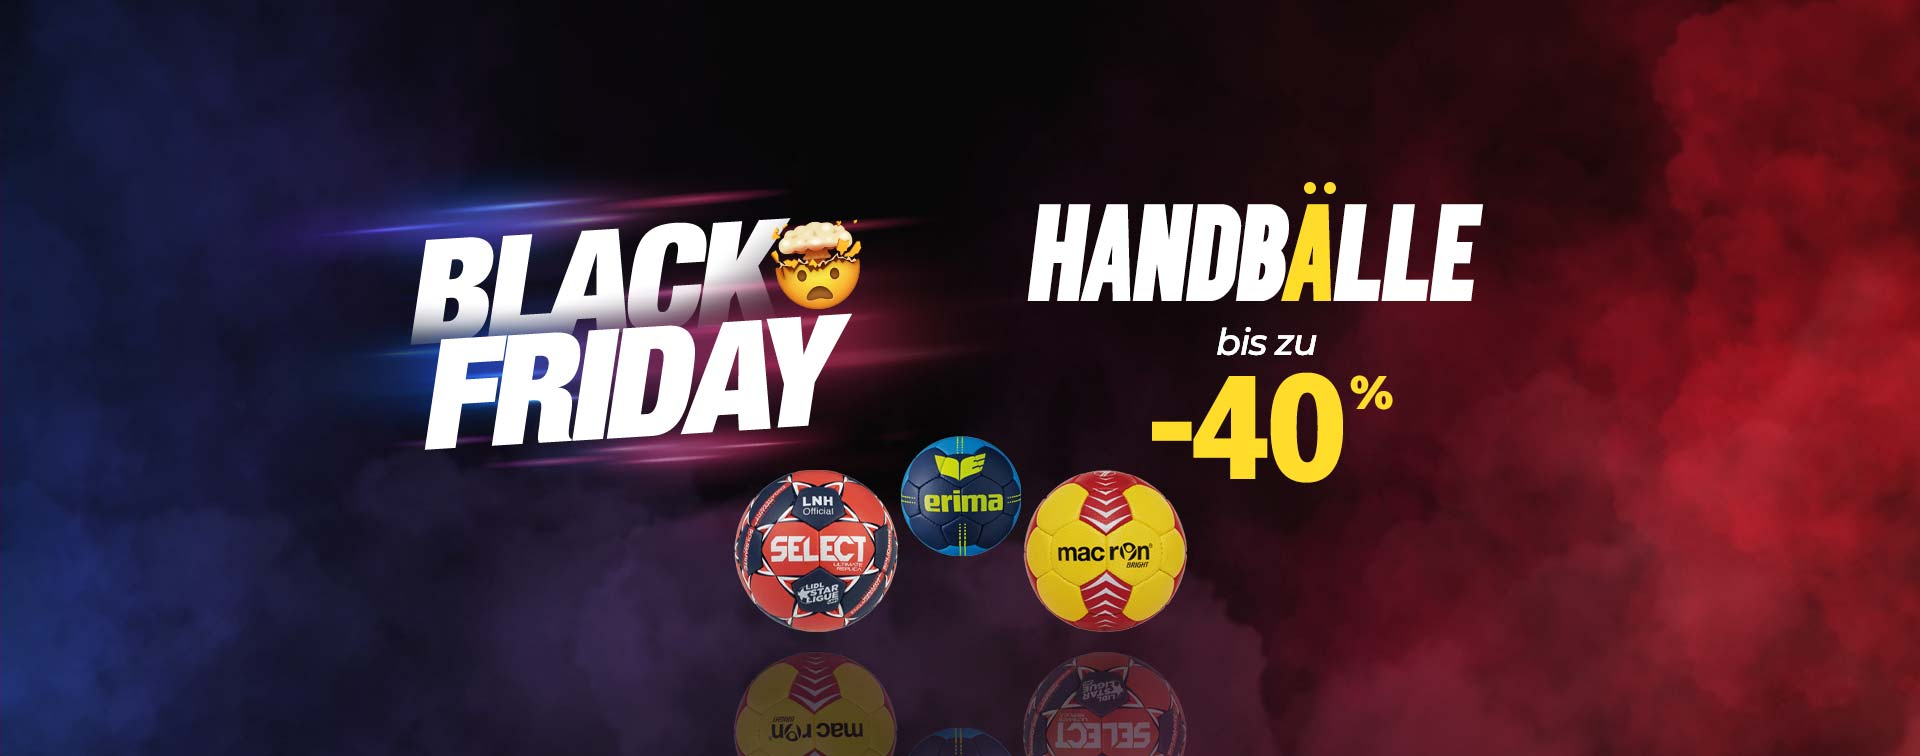 Black Friday Handbälle